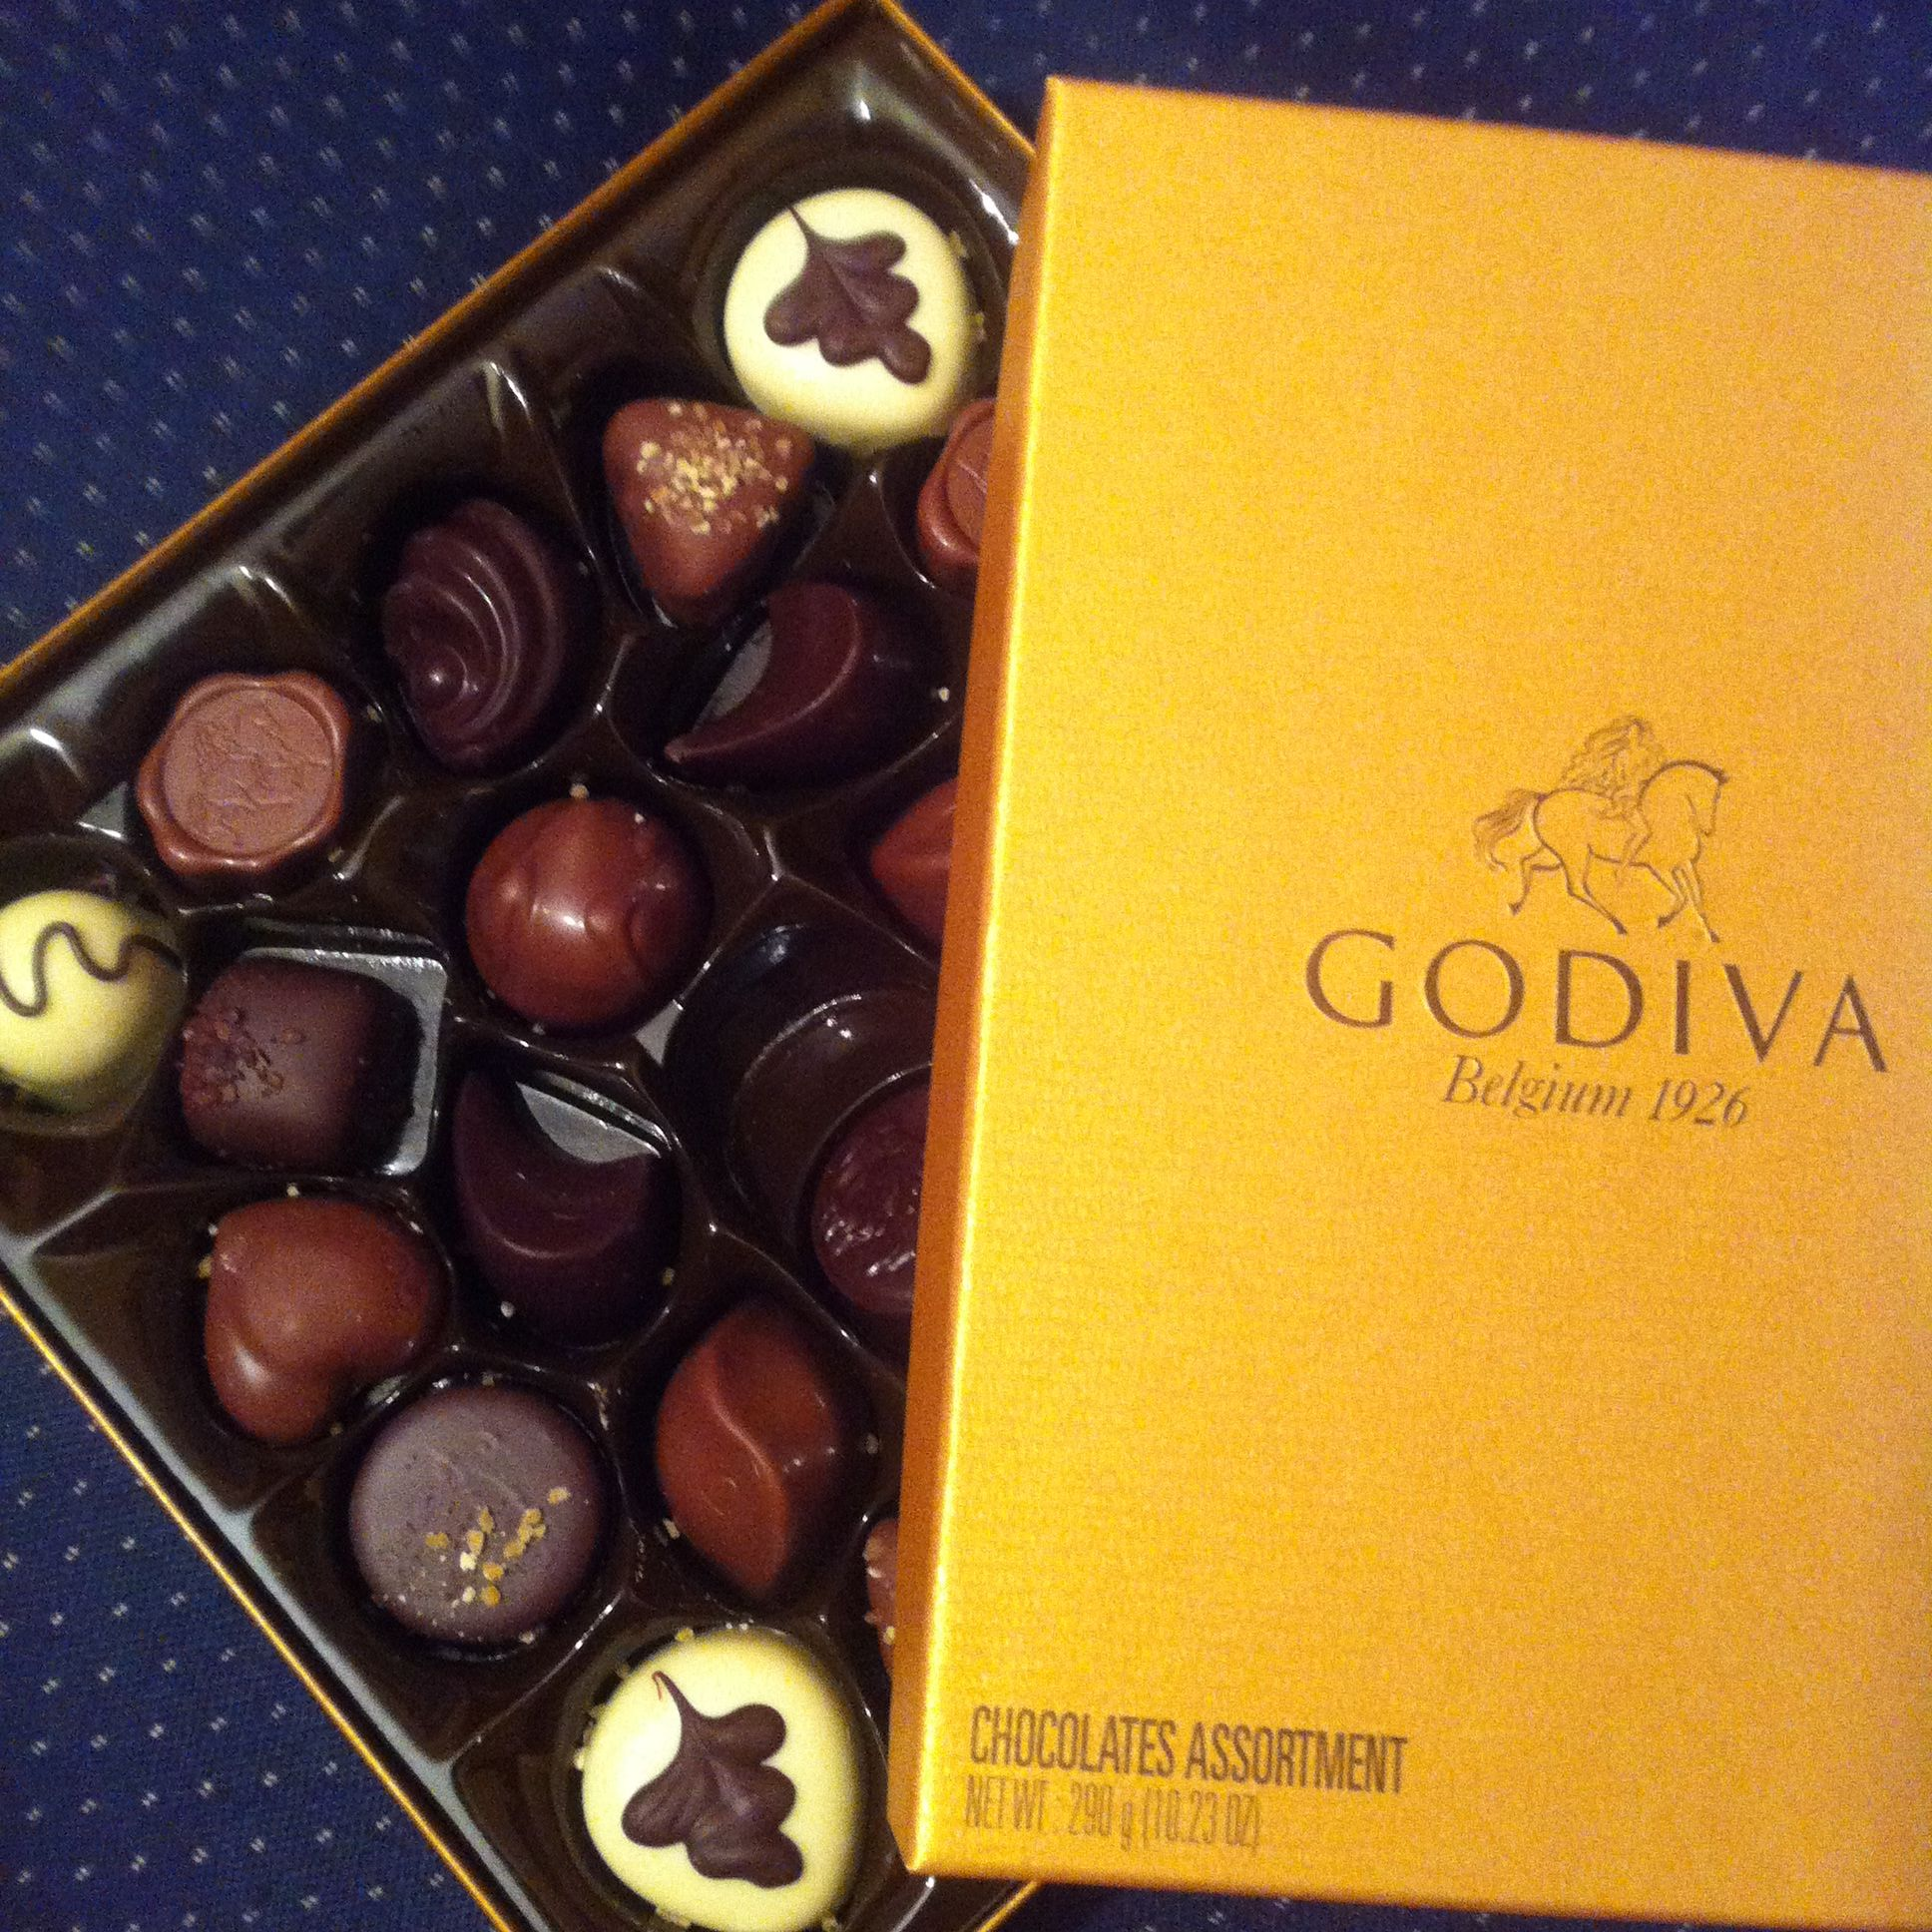 File:Godiva belgian chocolate golden box 24.JPG - Wikimedia Commons